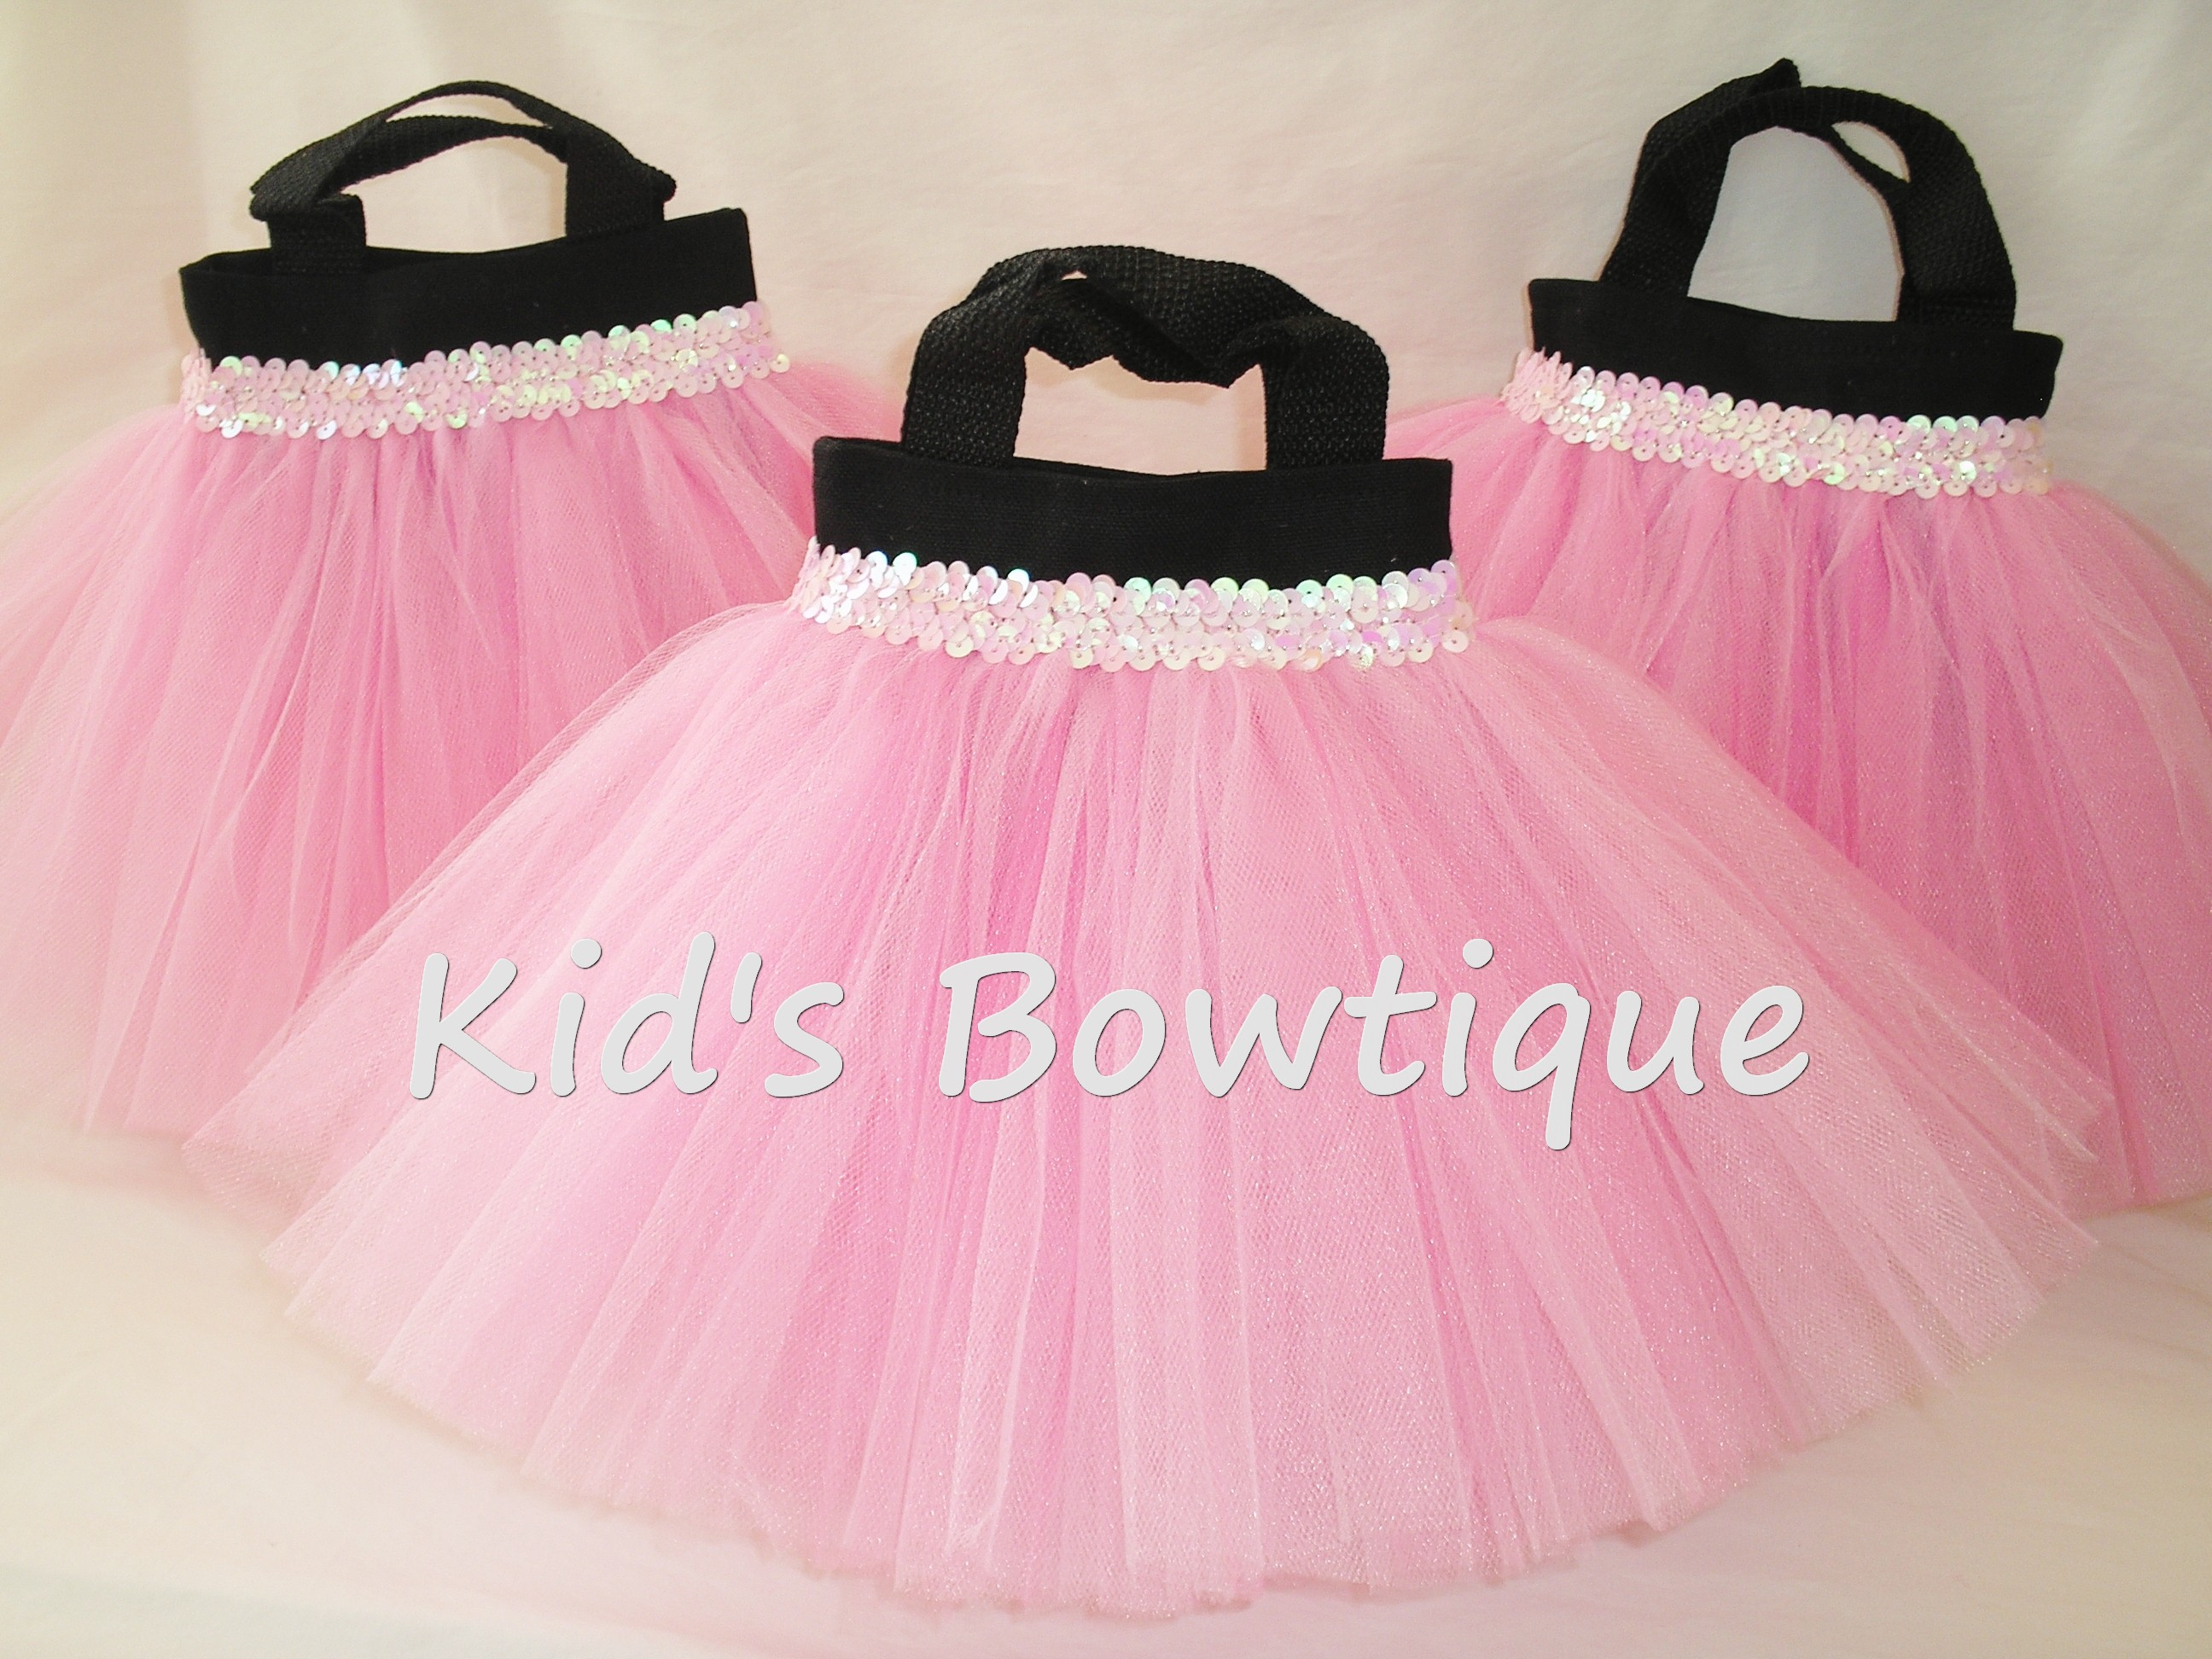 Party Favor Tutu Bags -pftb27 Pink Tutu and Sequins on Black Bag